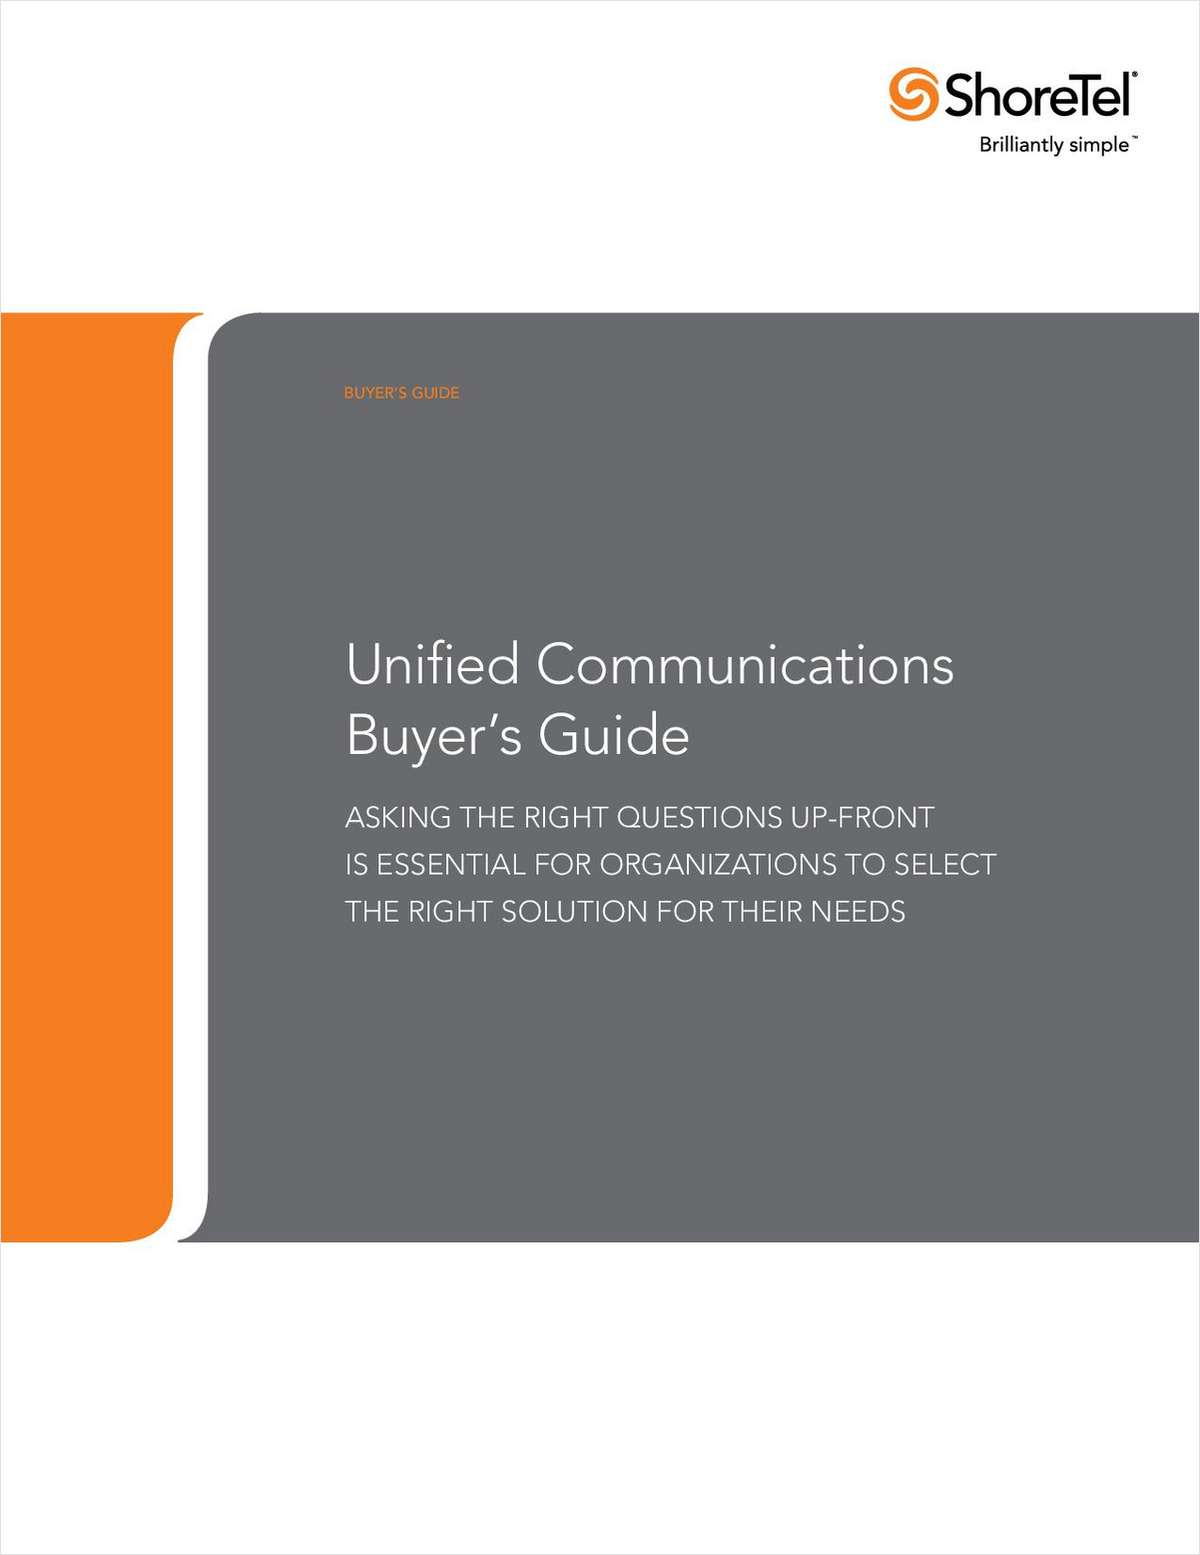 Unified Communications Buyer's Guide